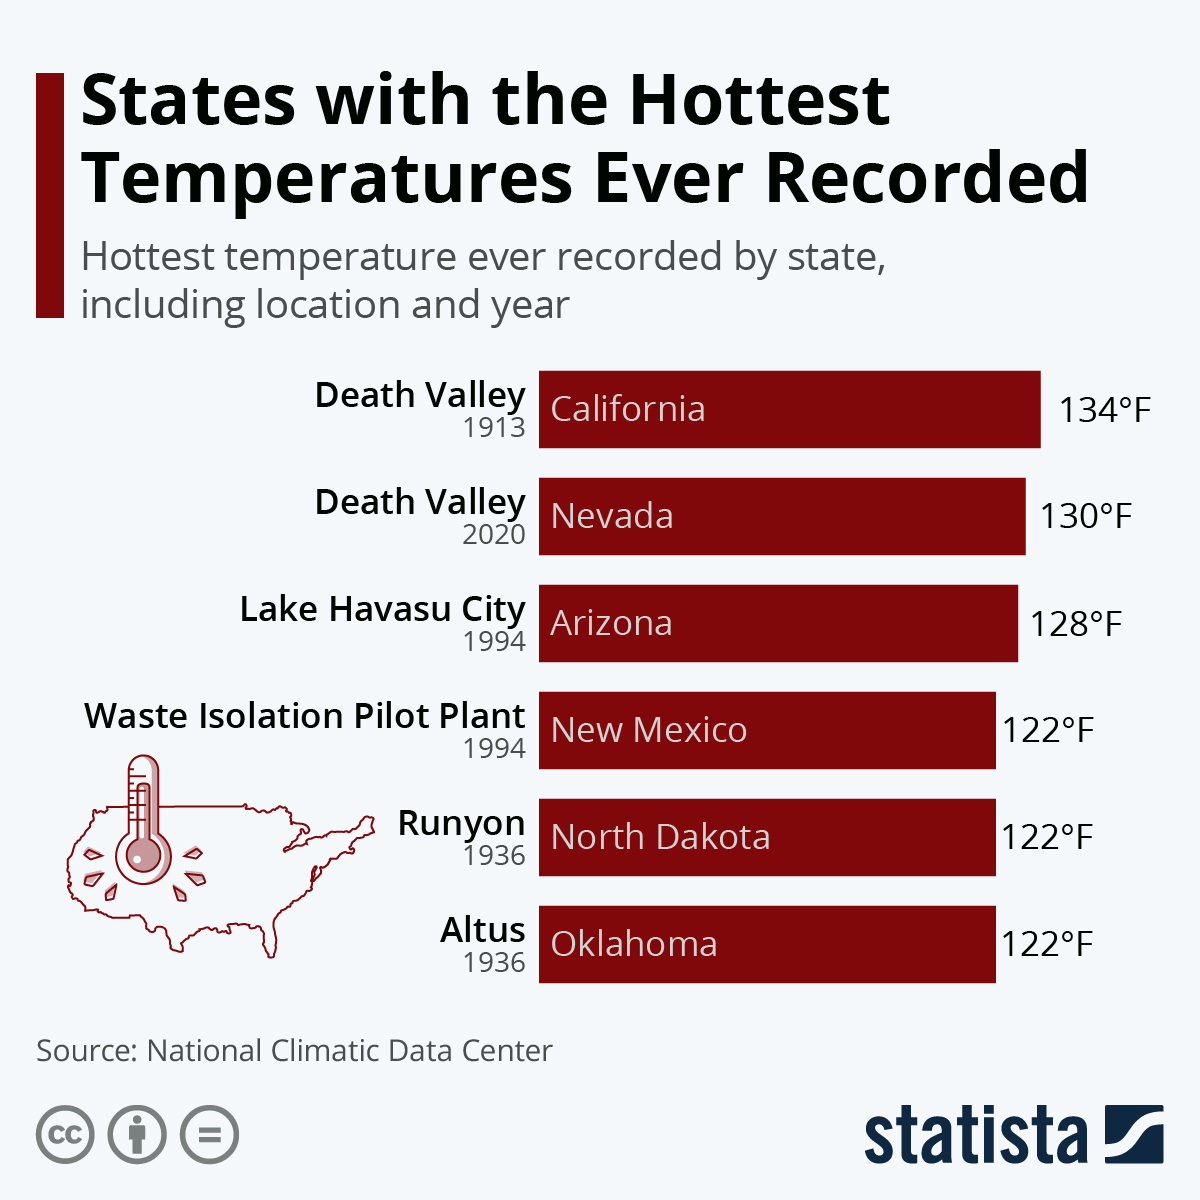 States with the Hottest Temperatures Ever Recorded #infographic